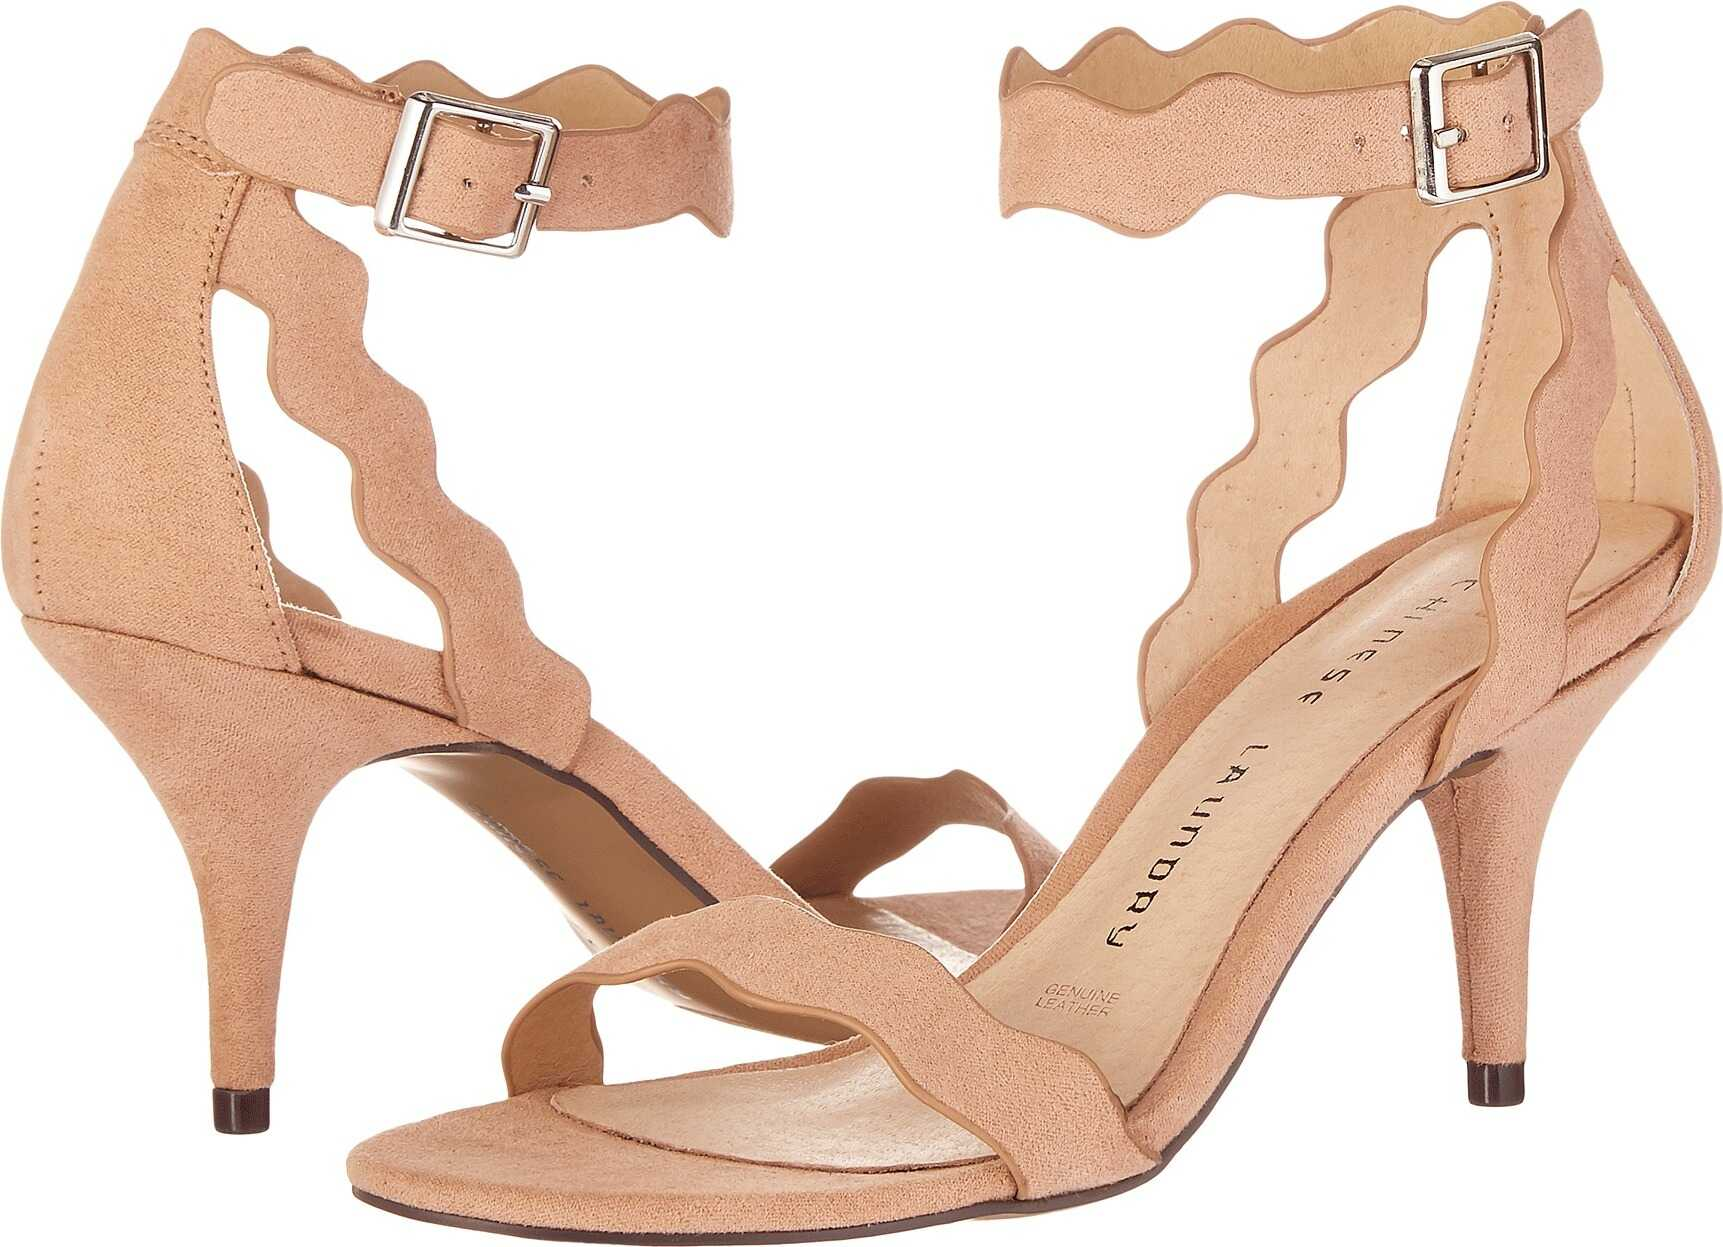 Chinese Laundry Rubie Scalloped Sandal Dark Nude Micro Suede